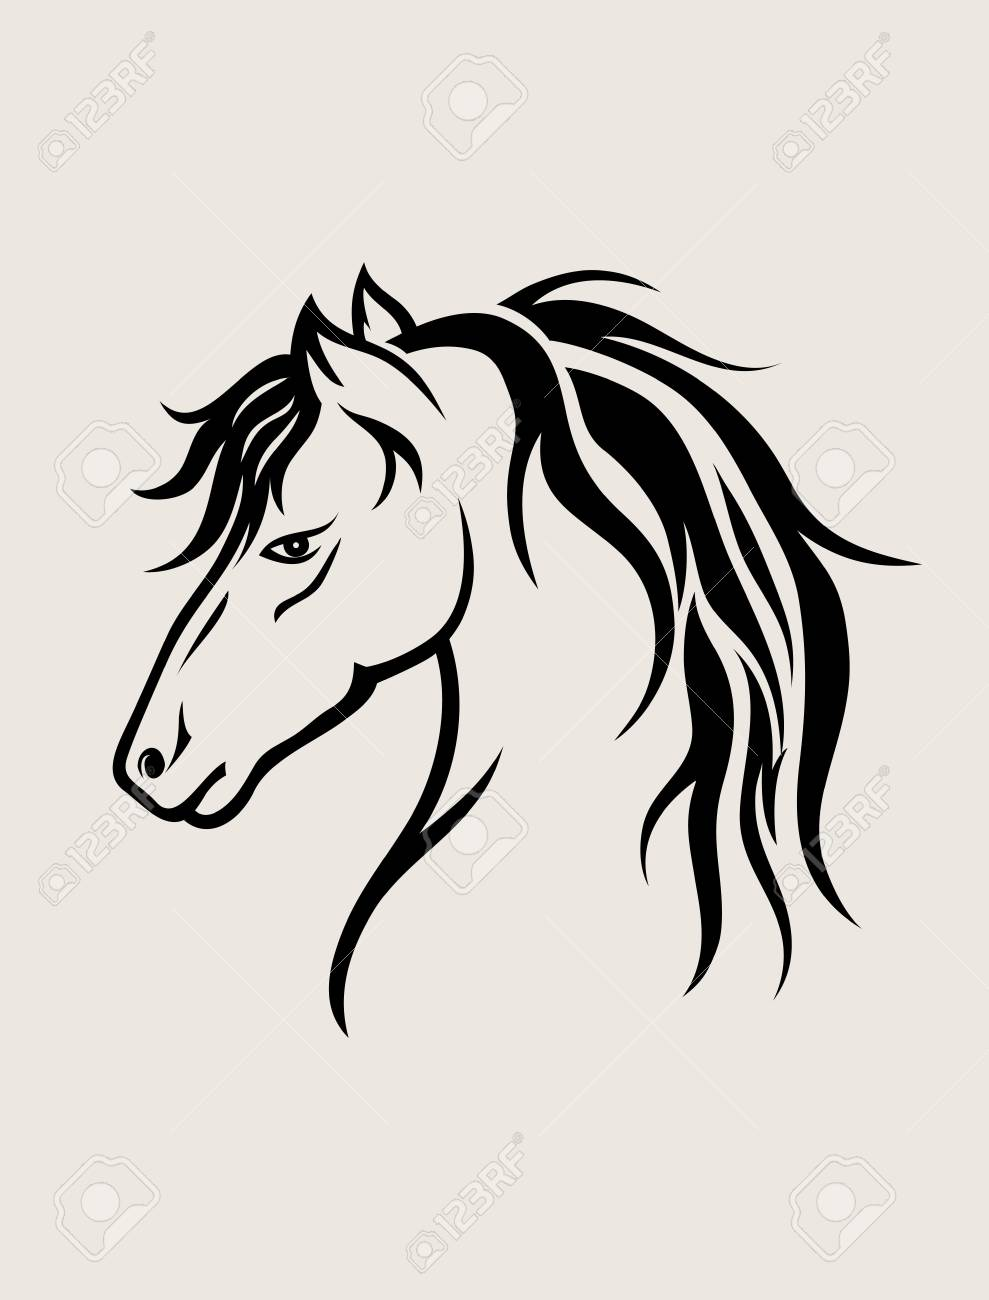 Horse Face Art Vector Design Royalty Free Cliparts Vectors And Stock Illustration Image 94243629